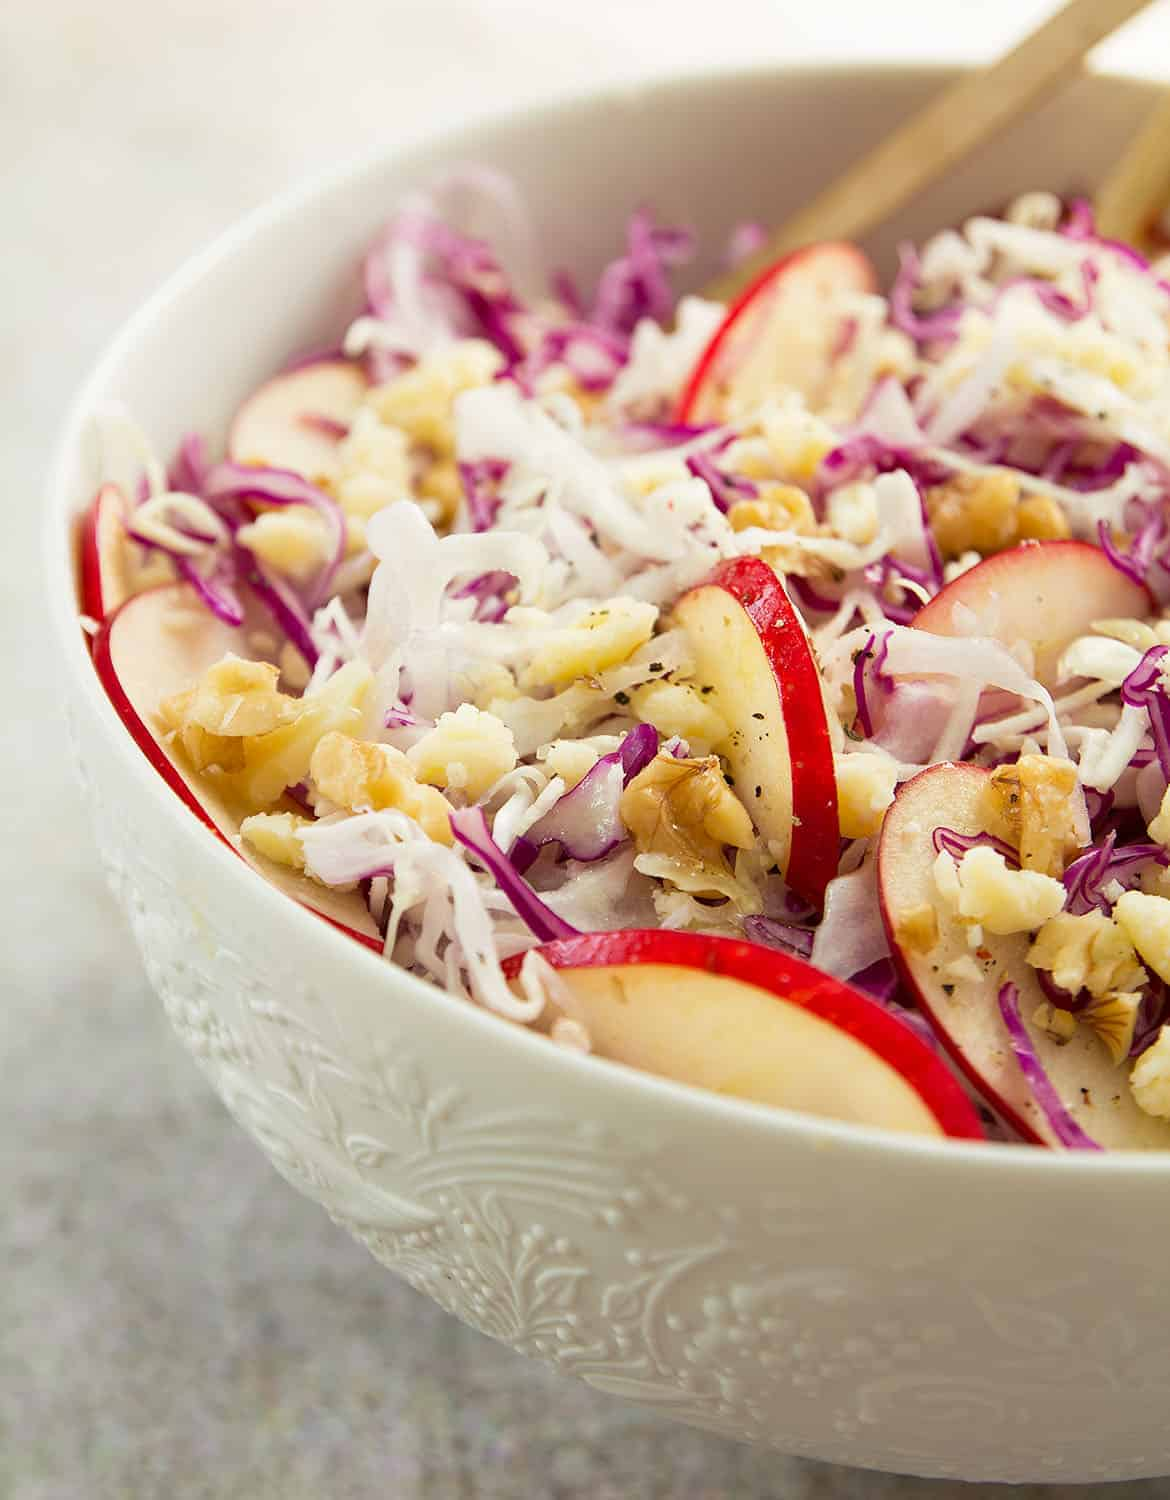 A close-up of a white bowl full of cabbage salad, apple slices and walnuts.